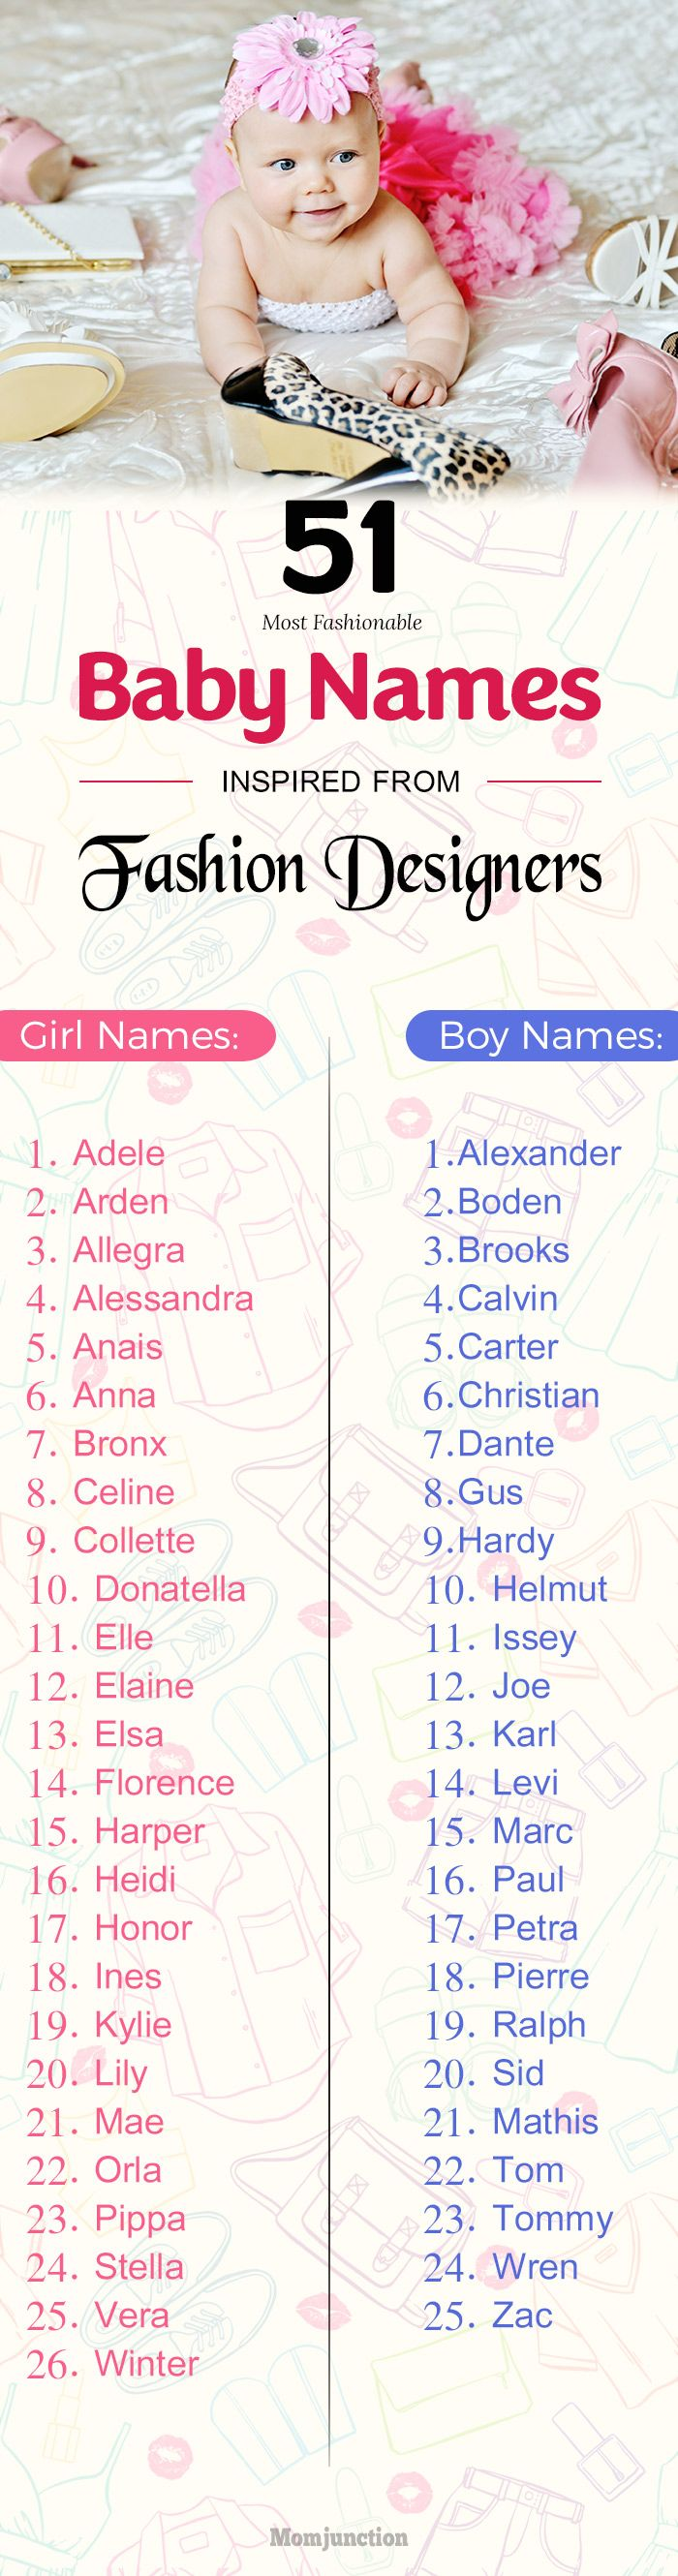 138 best images about Names on Pinterest | Southern baby ...